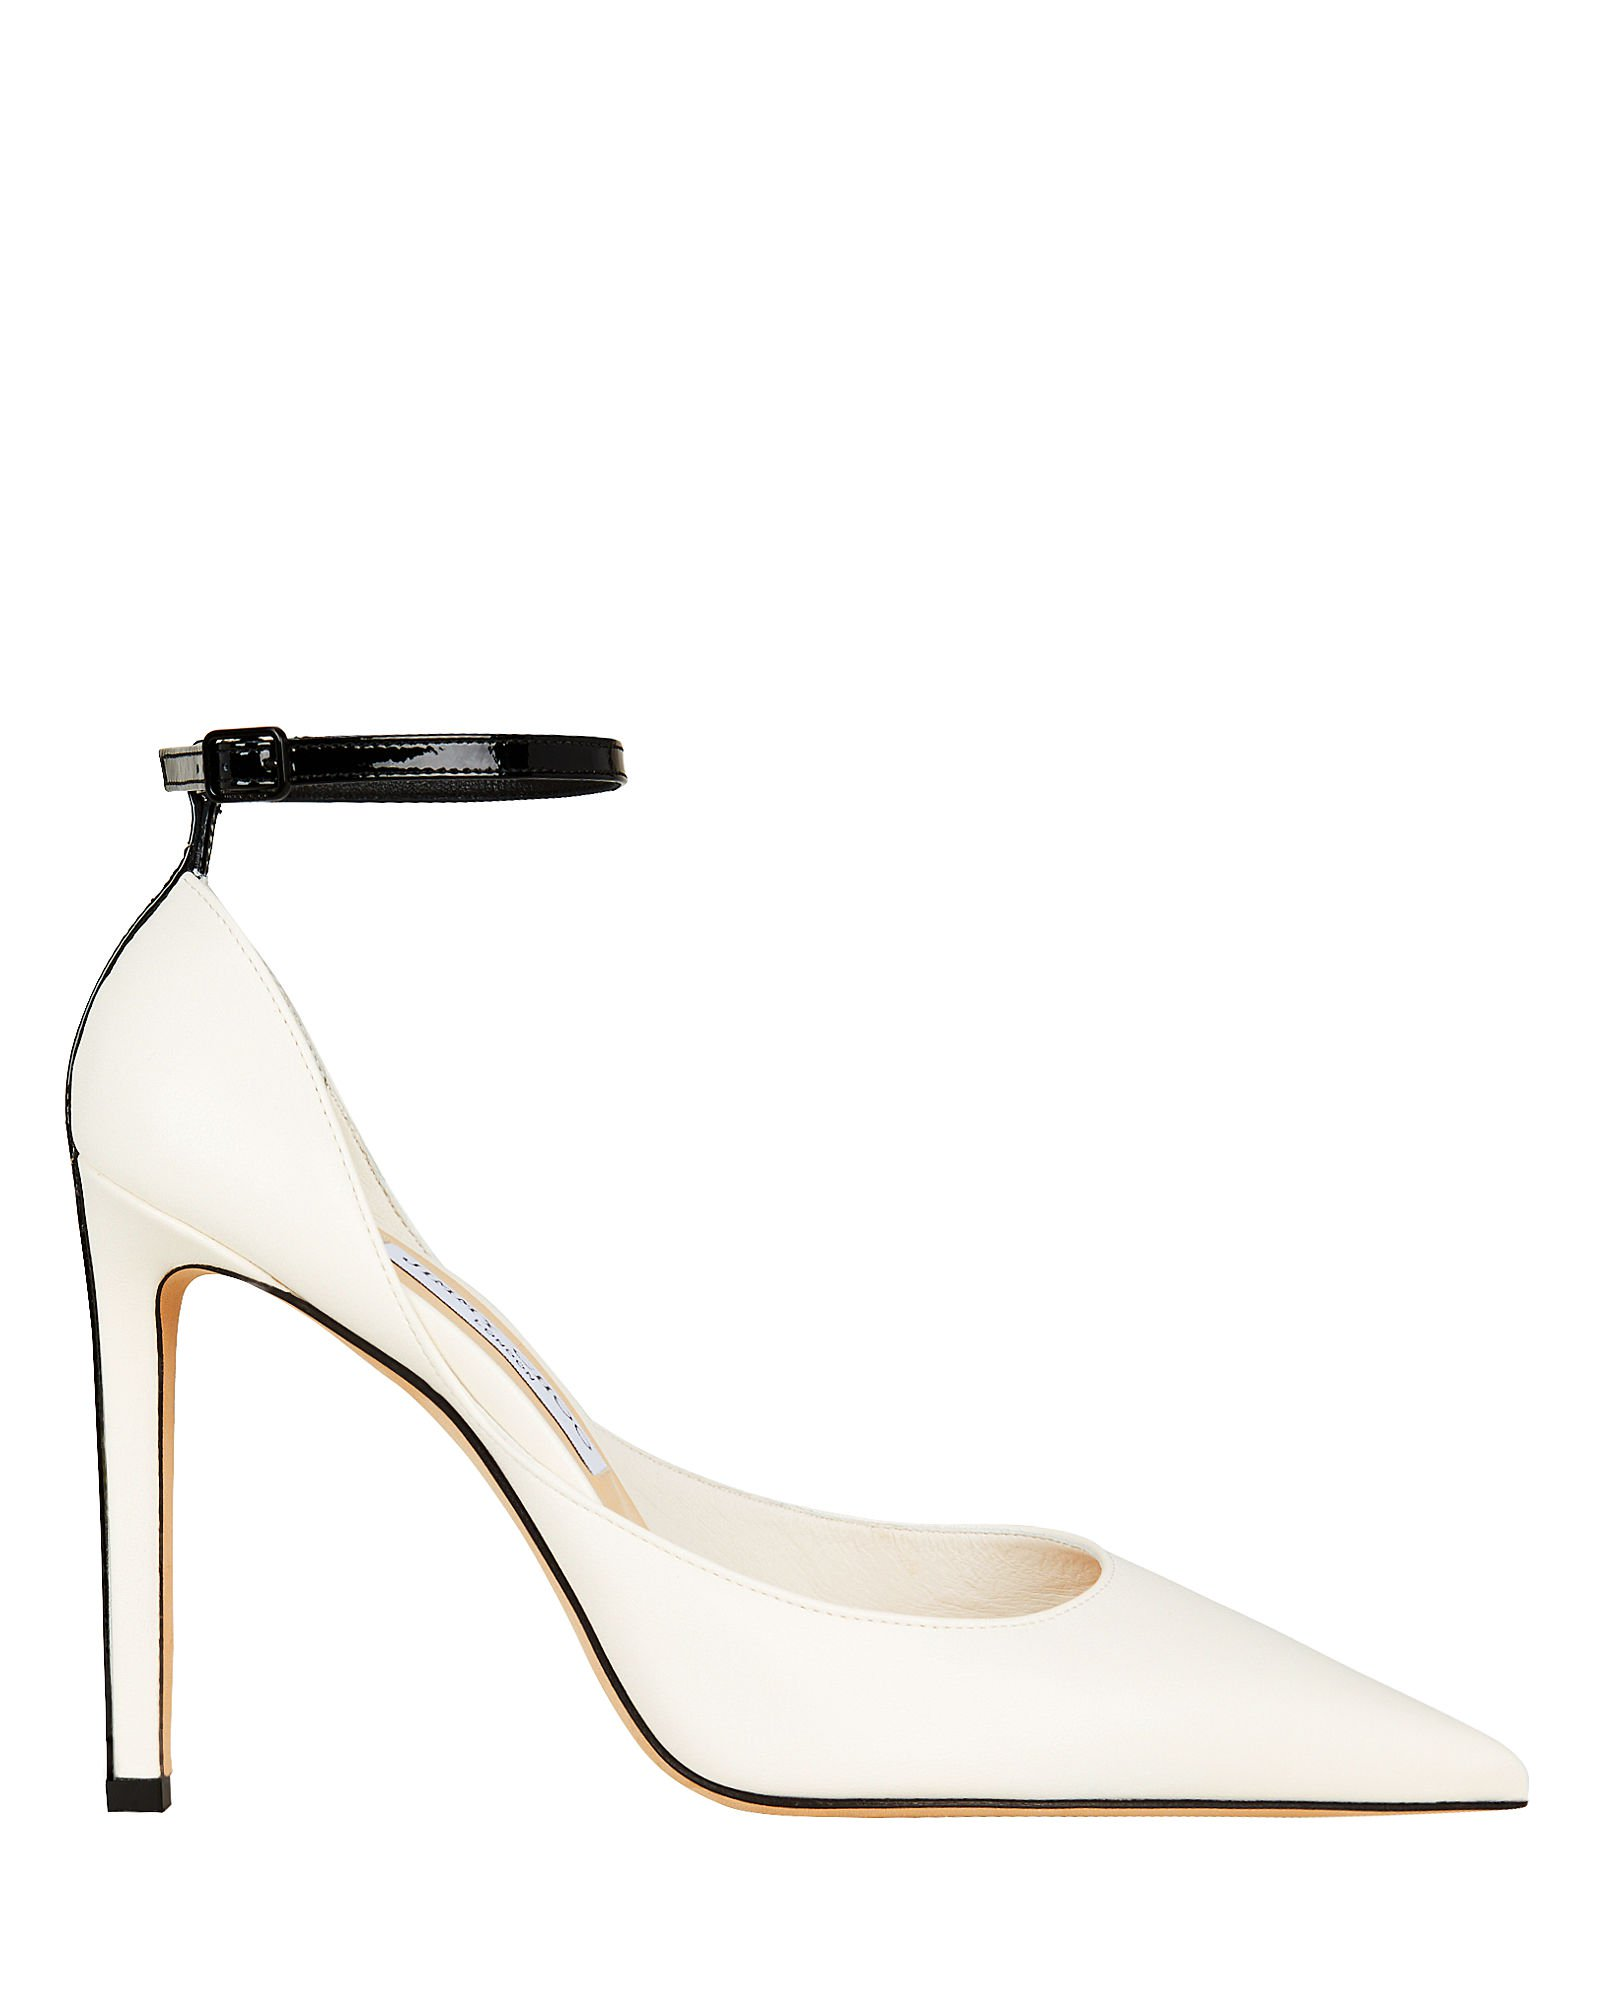 Helix Pointed Toe Pumps